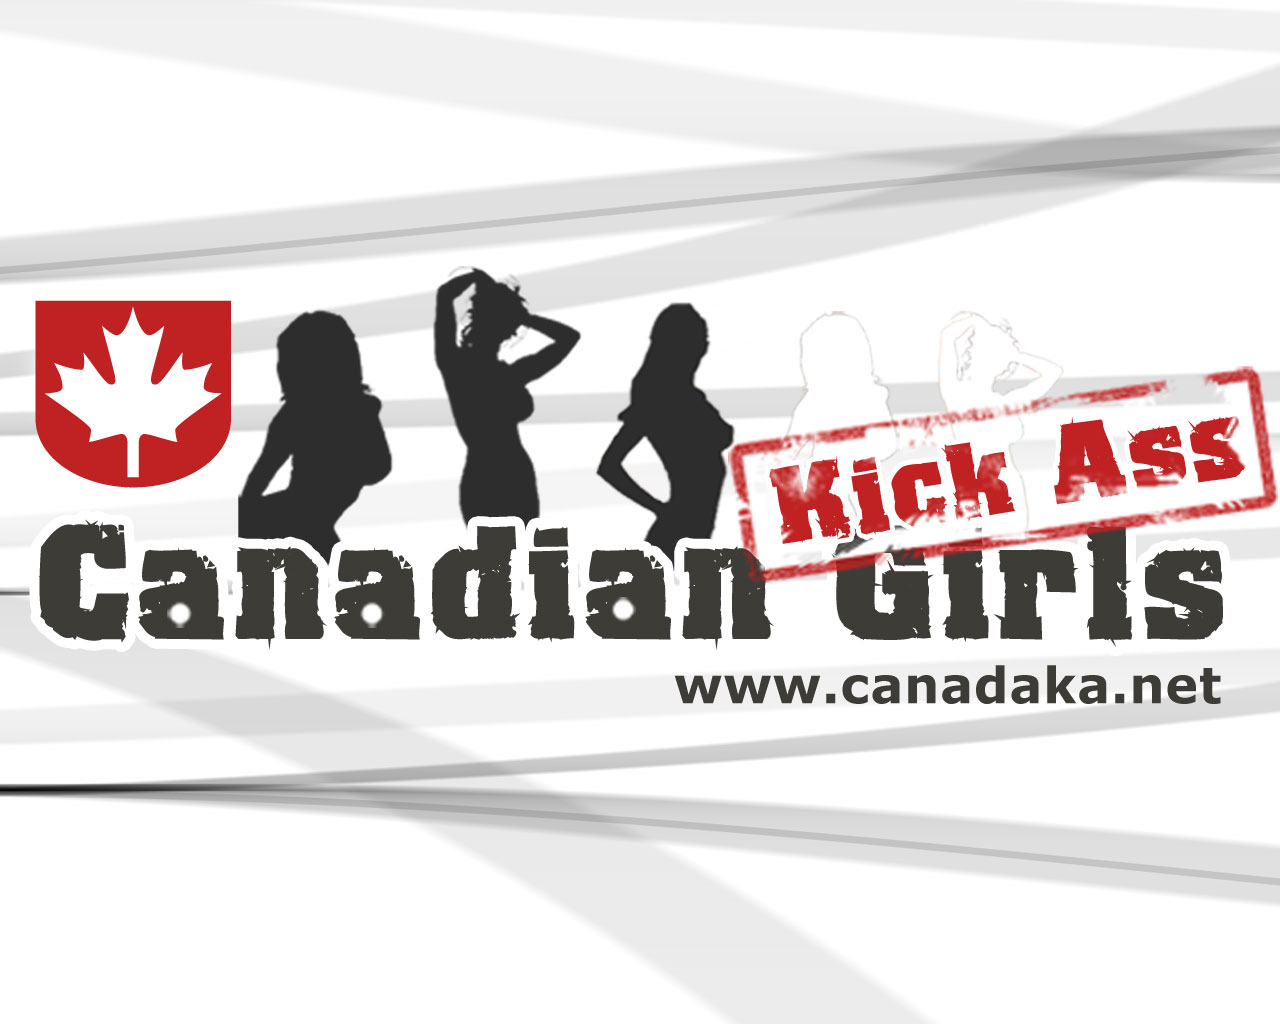 Canadian country community comes together with country kicks cancer's ass benefit concert